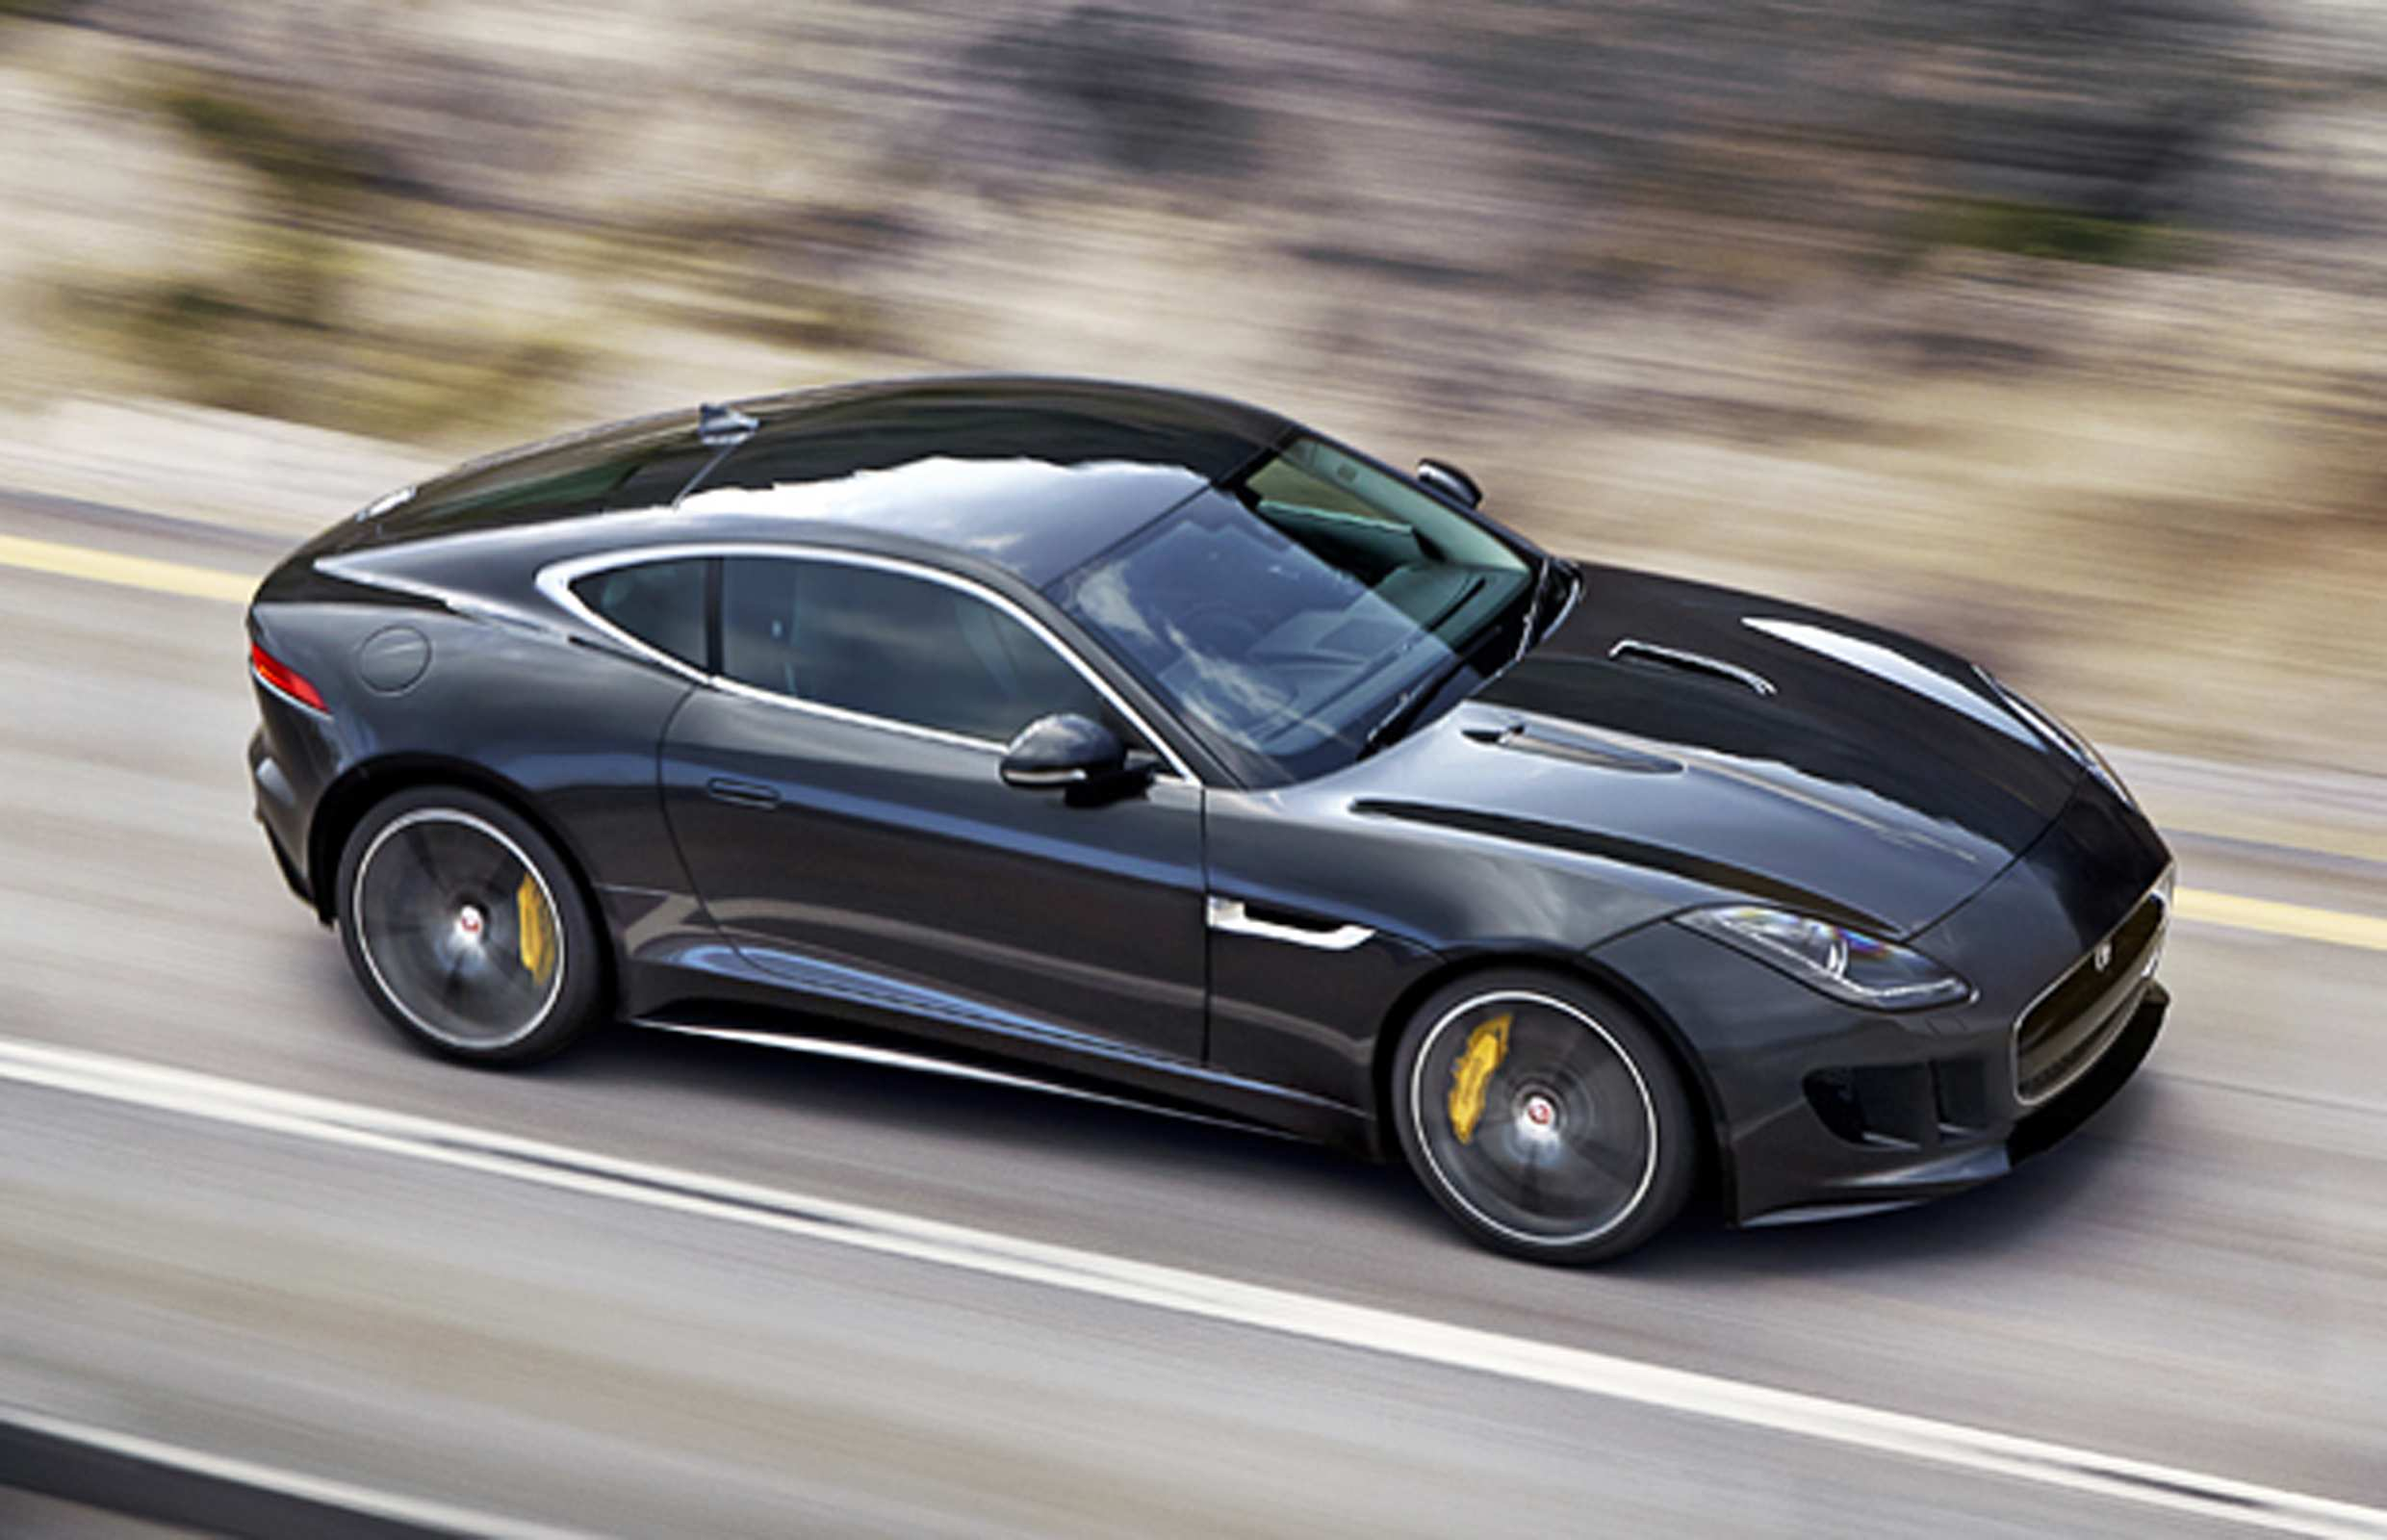 85 New 2020 Jaguar F Type Convertible Price and Review with 2020 Jaguar F Type Convertible